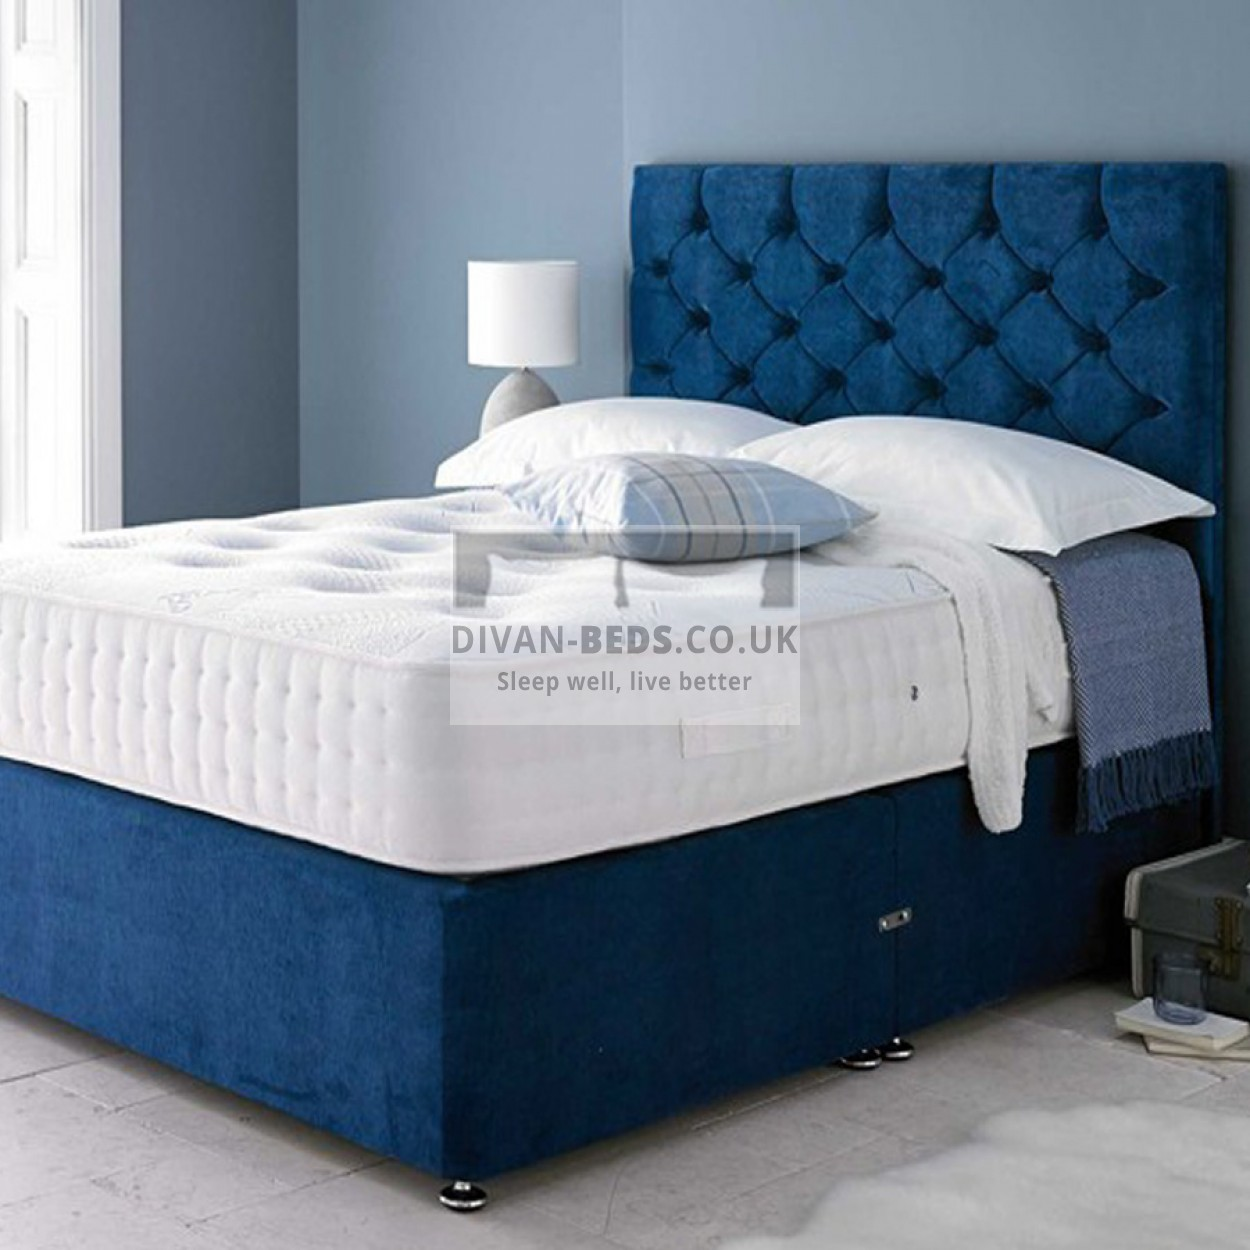 Oliver Sensation Luxury Ottoman Divan Bed With Headboard Guaranteed Cheapest Free Fast